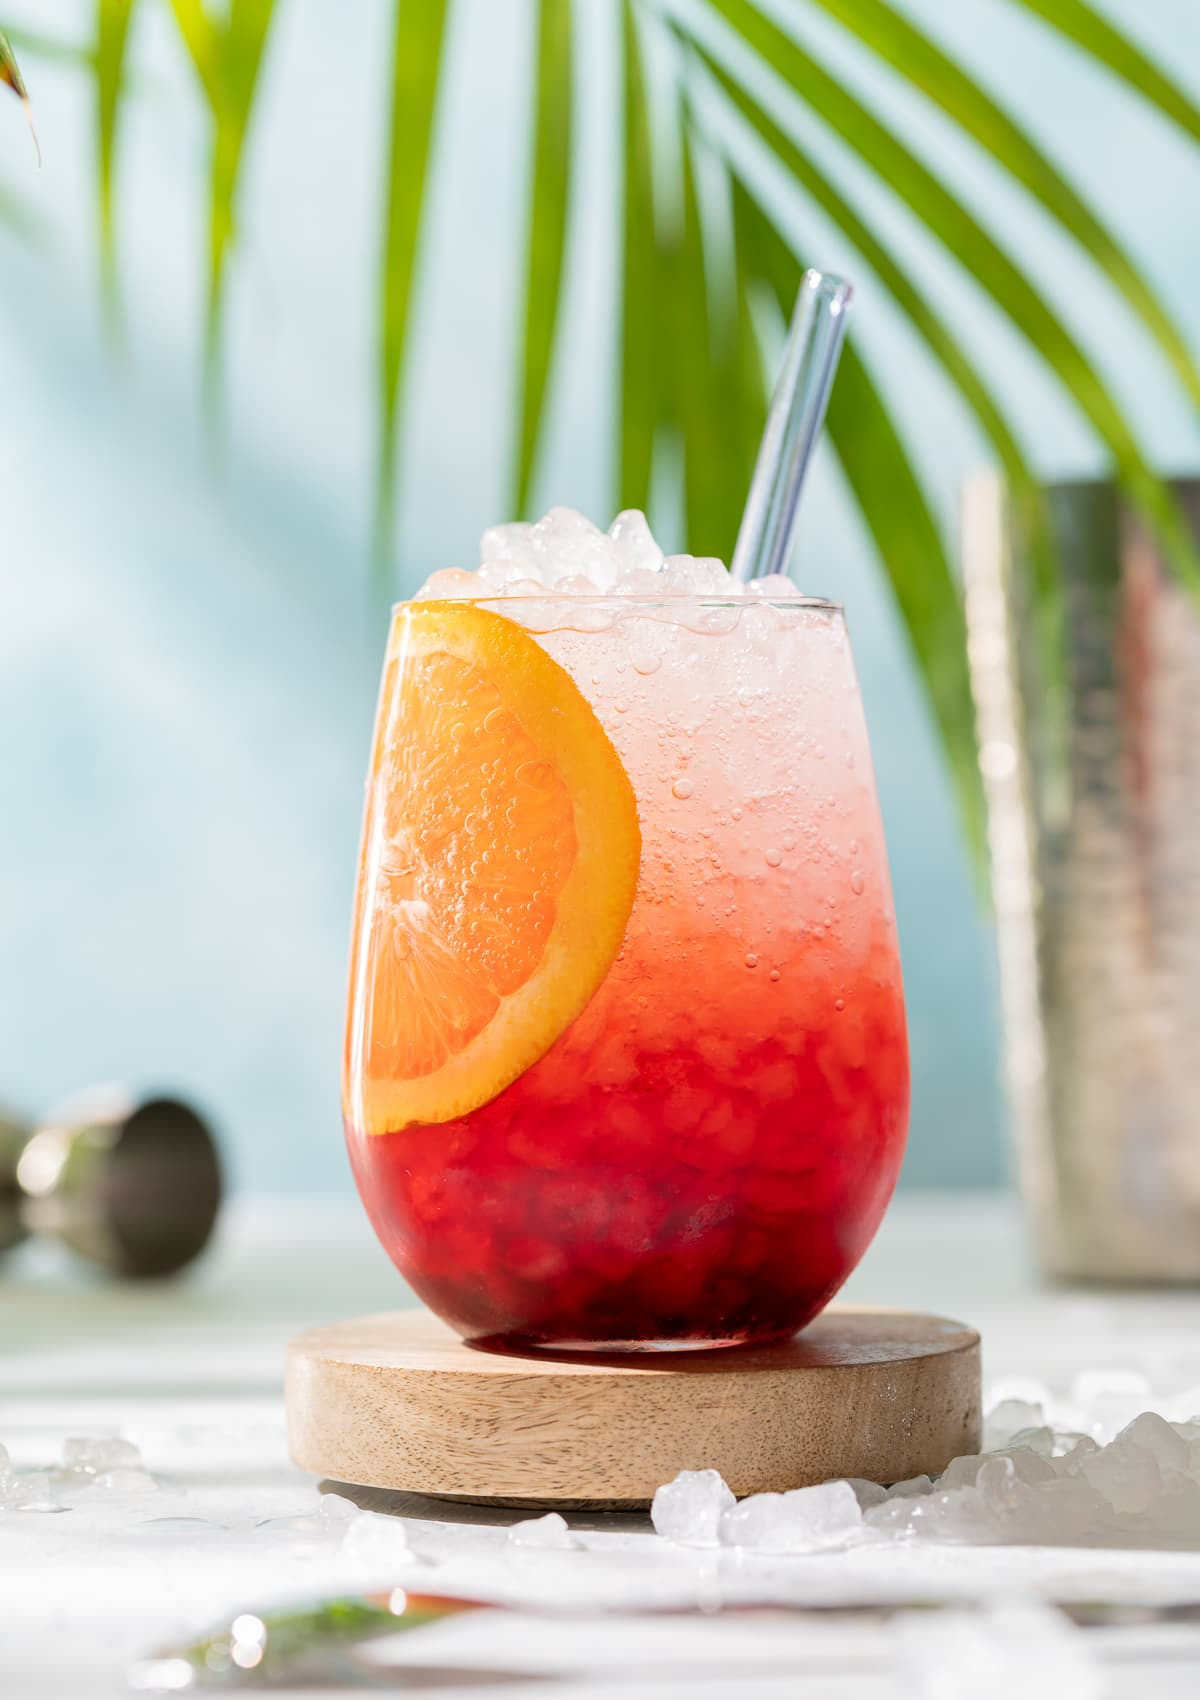 hibiscus spritz red and white cocktail with orange slice yellow plumeria palm leaves